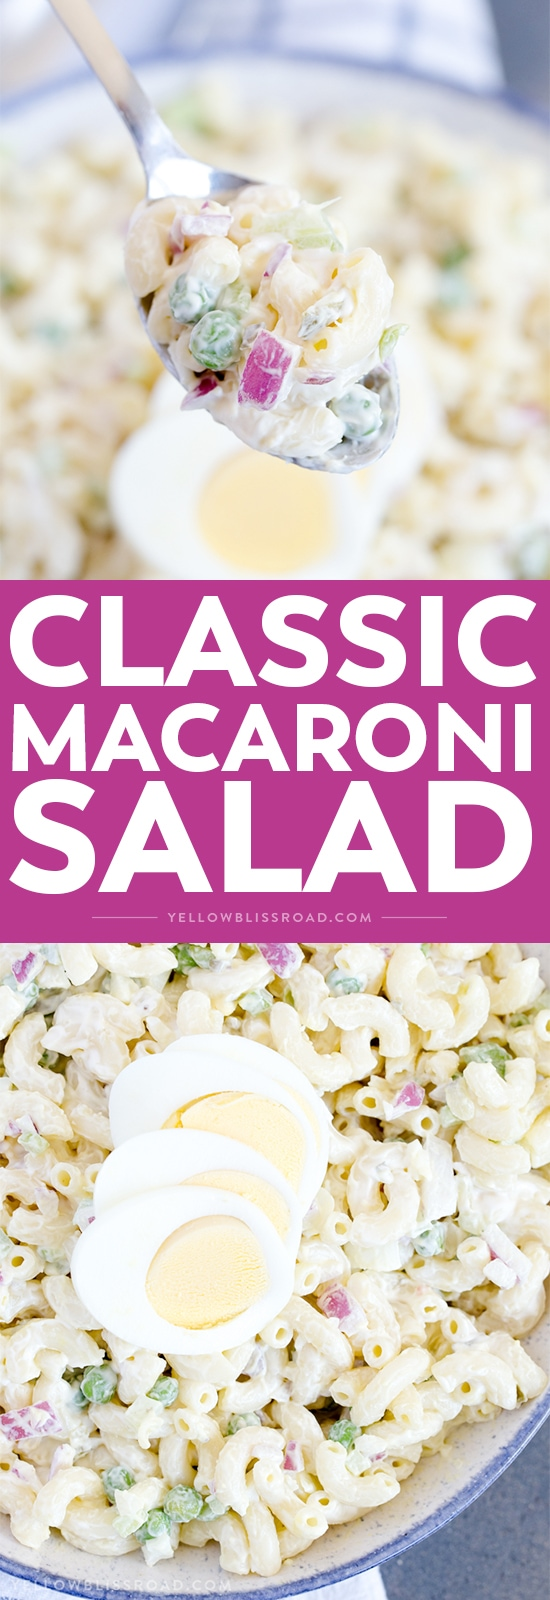 The best macaroni salad two image collage